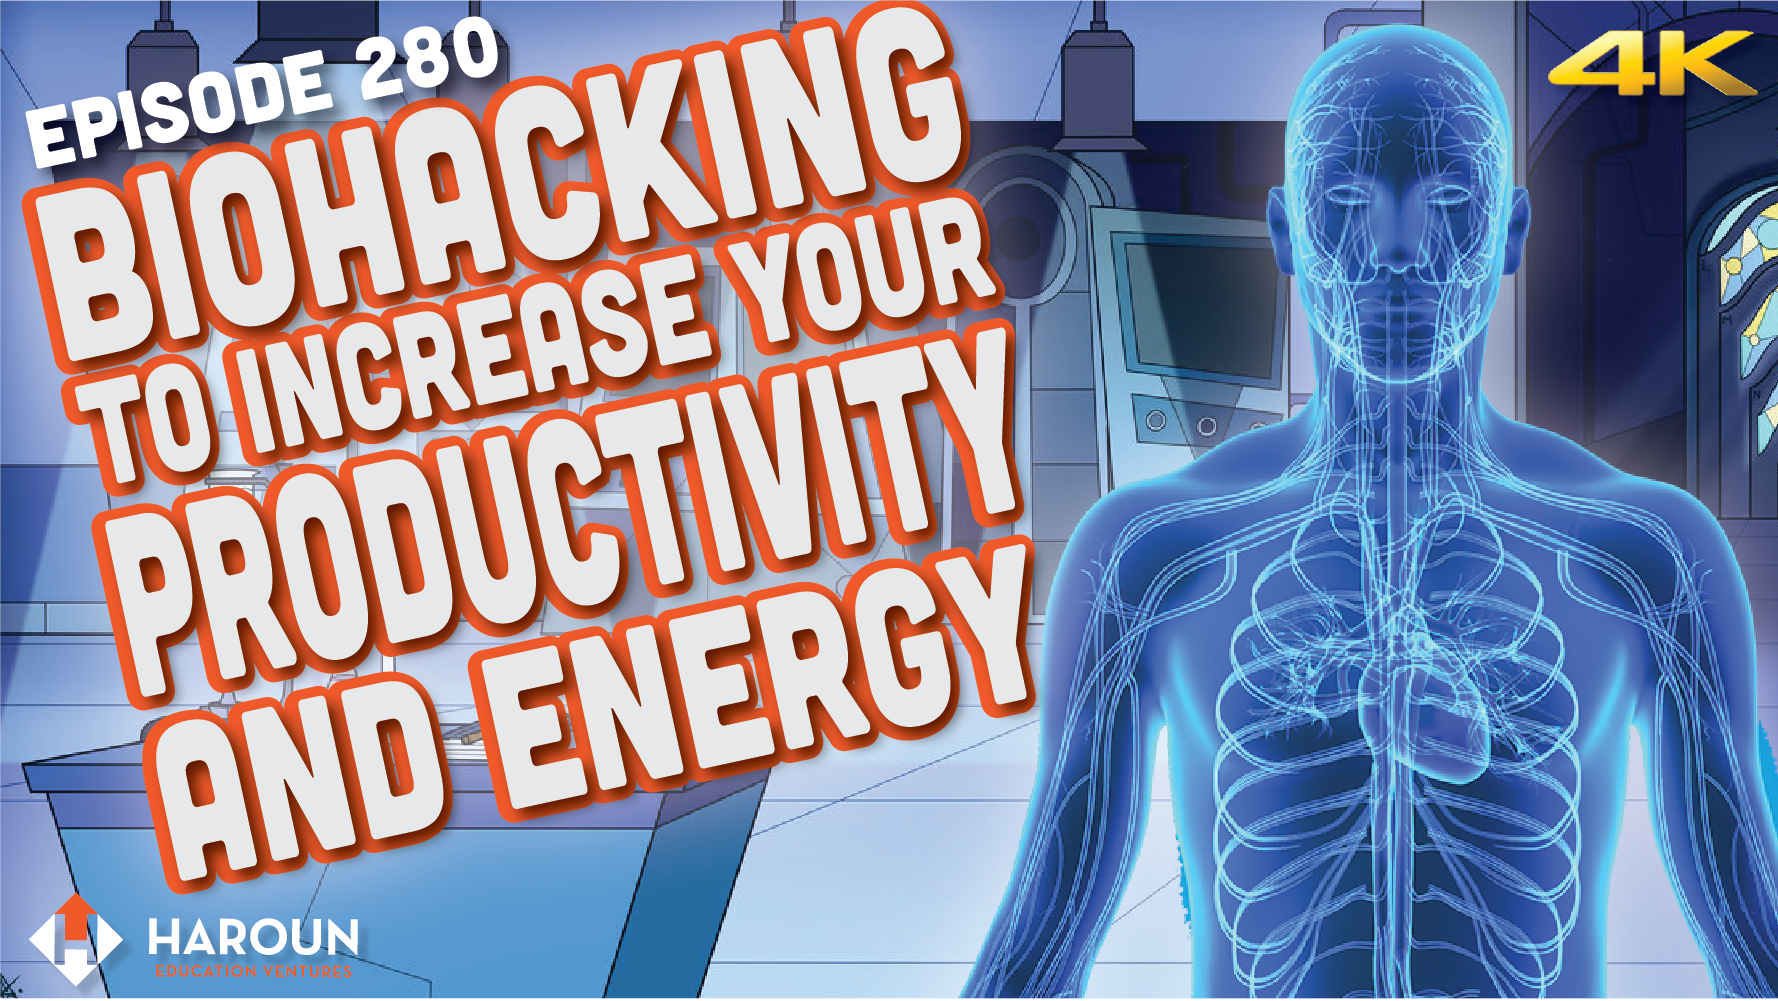 VLOG_280_5_7_2019_Biohacking to Increase Your Productivity and Energy.png